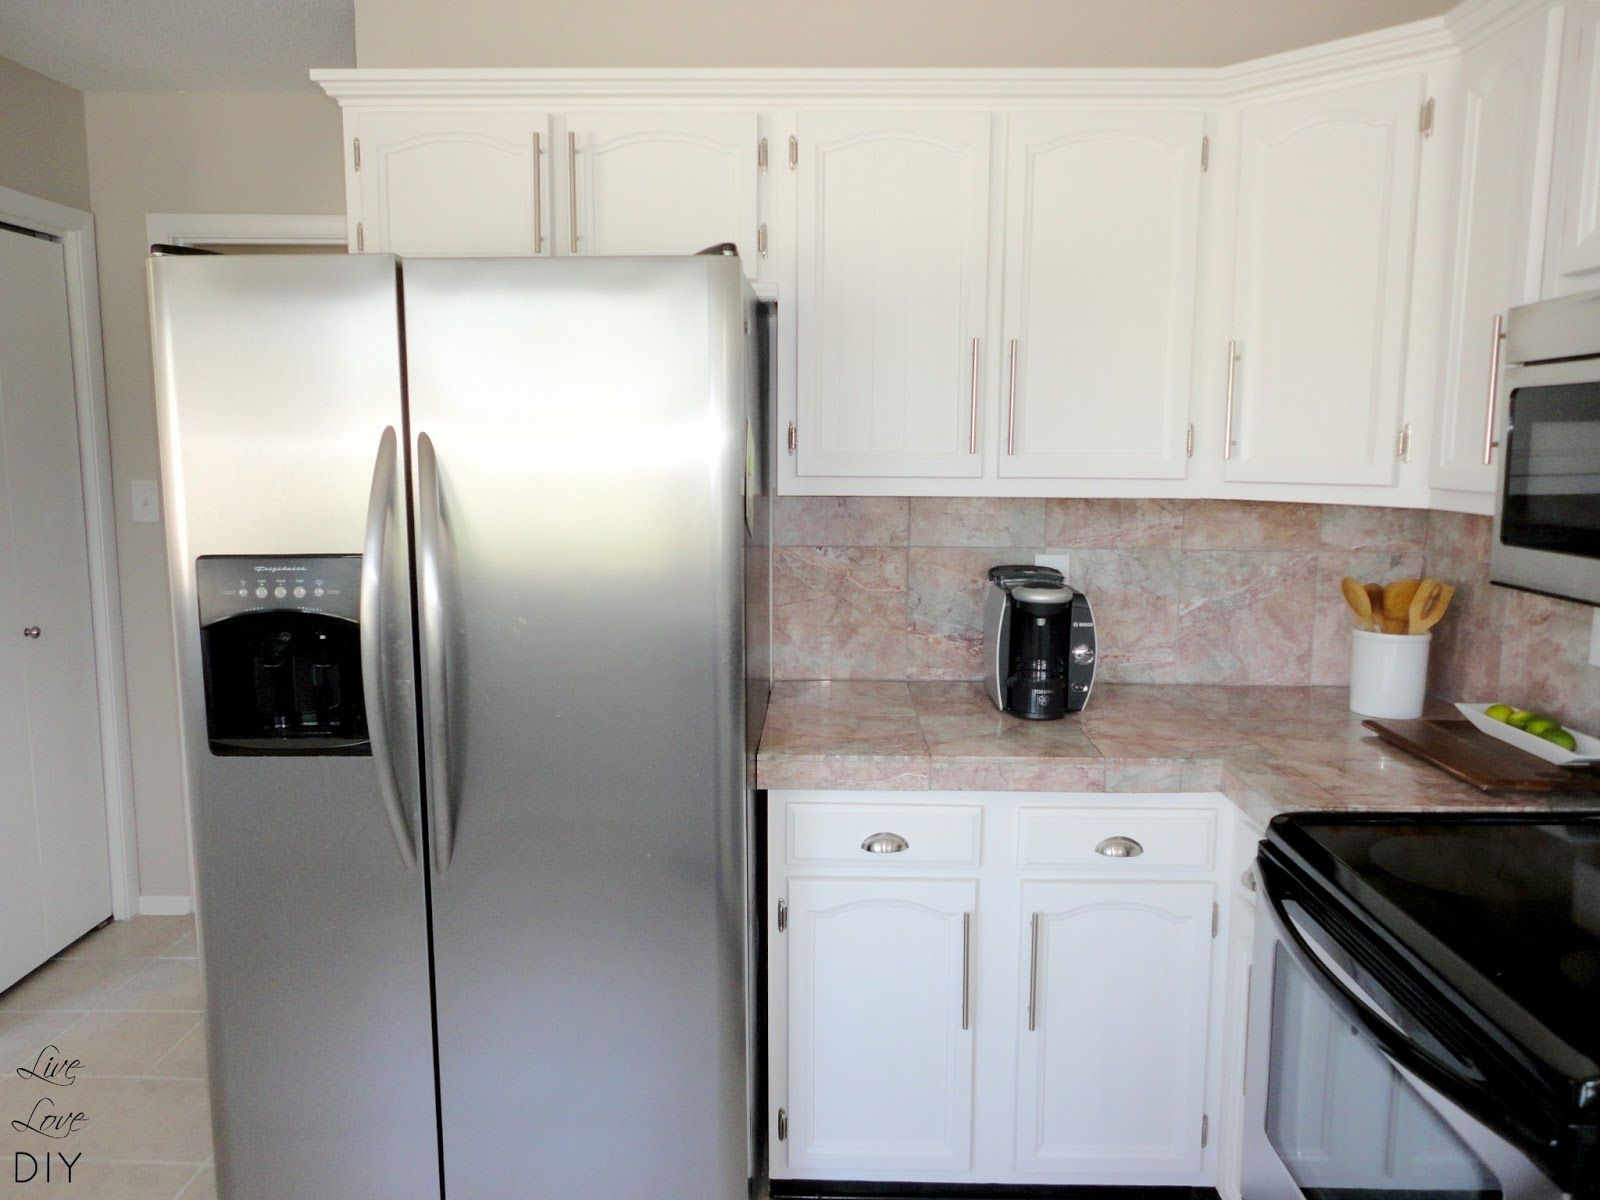 Livelovediy How To Paint Kitchen Cabinets In 10 Easy Steps Diy Kitchen Remodel Painting Kitchen Cabinets White Kitchen Island Countertop